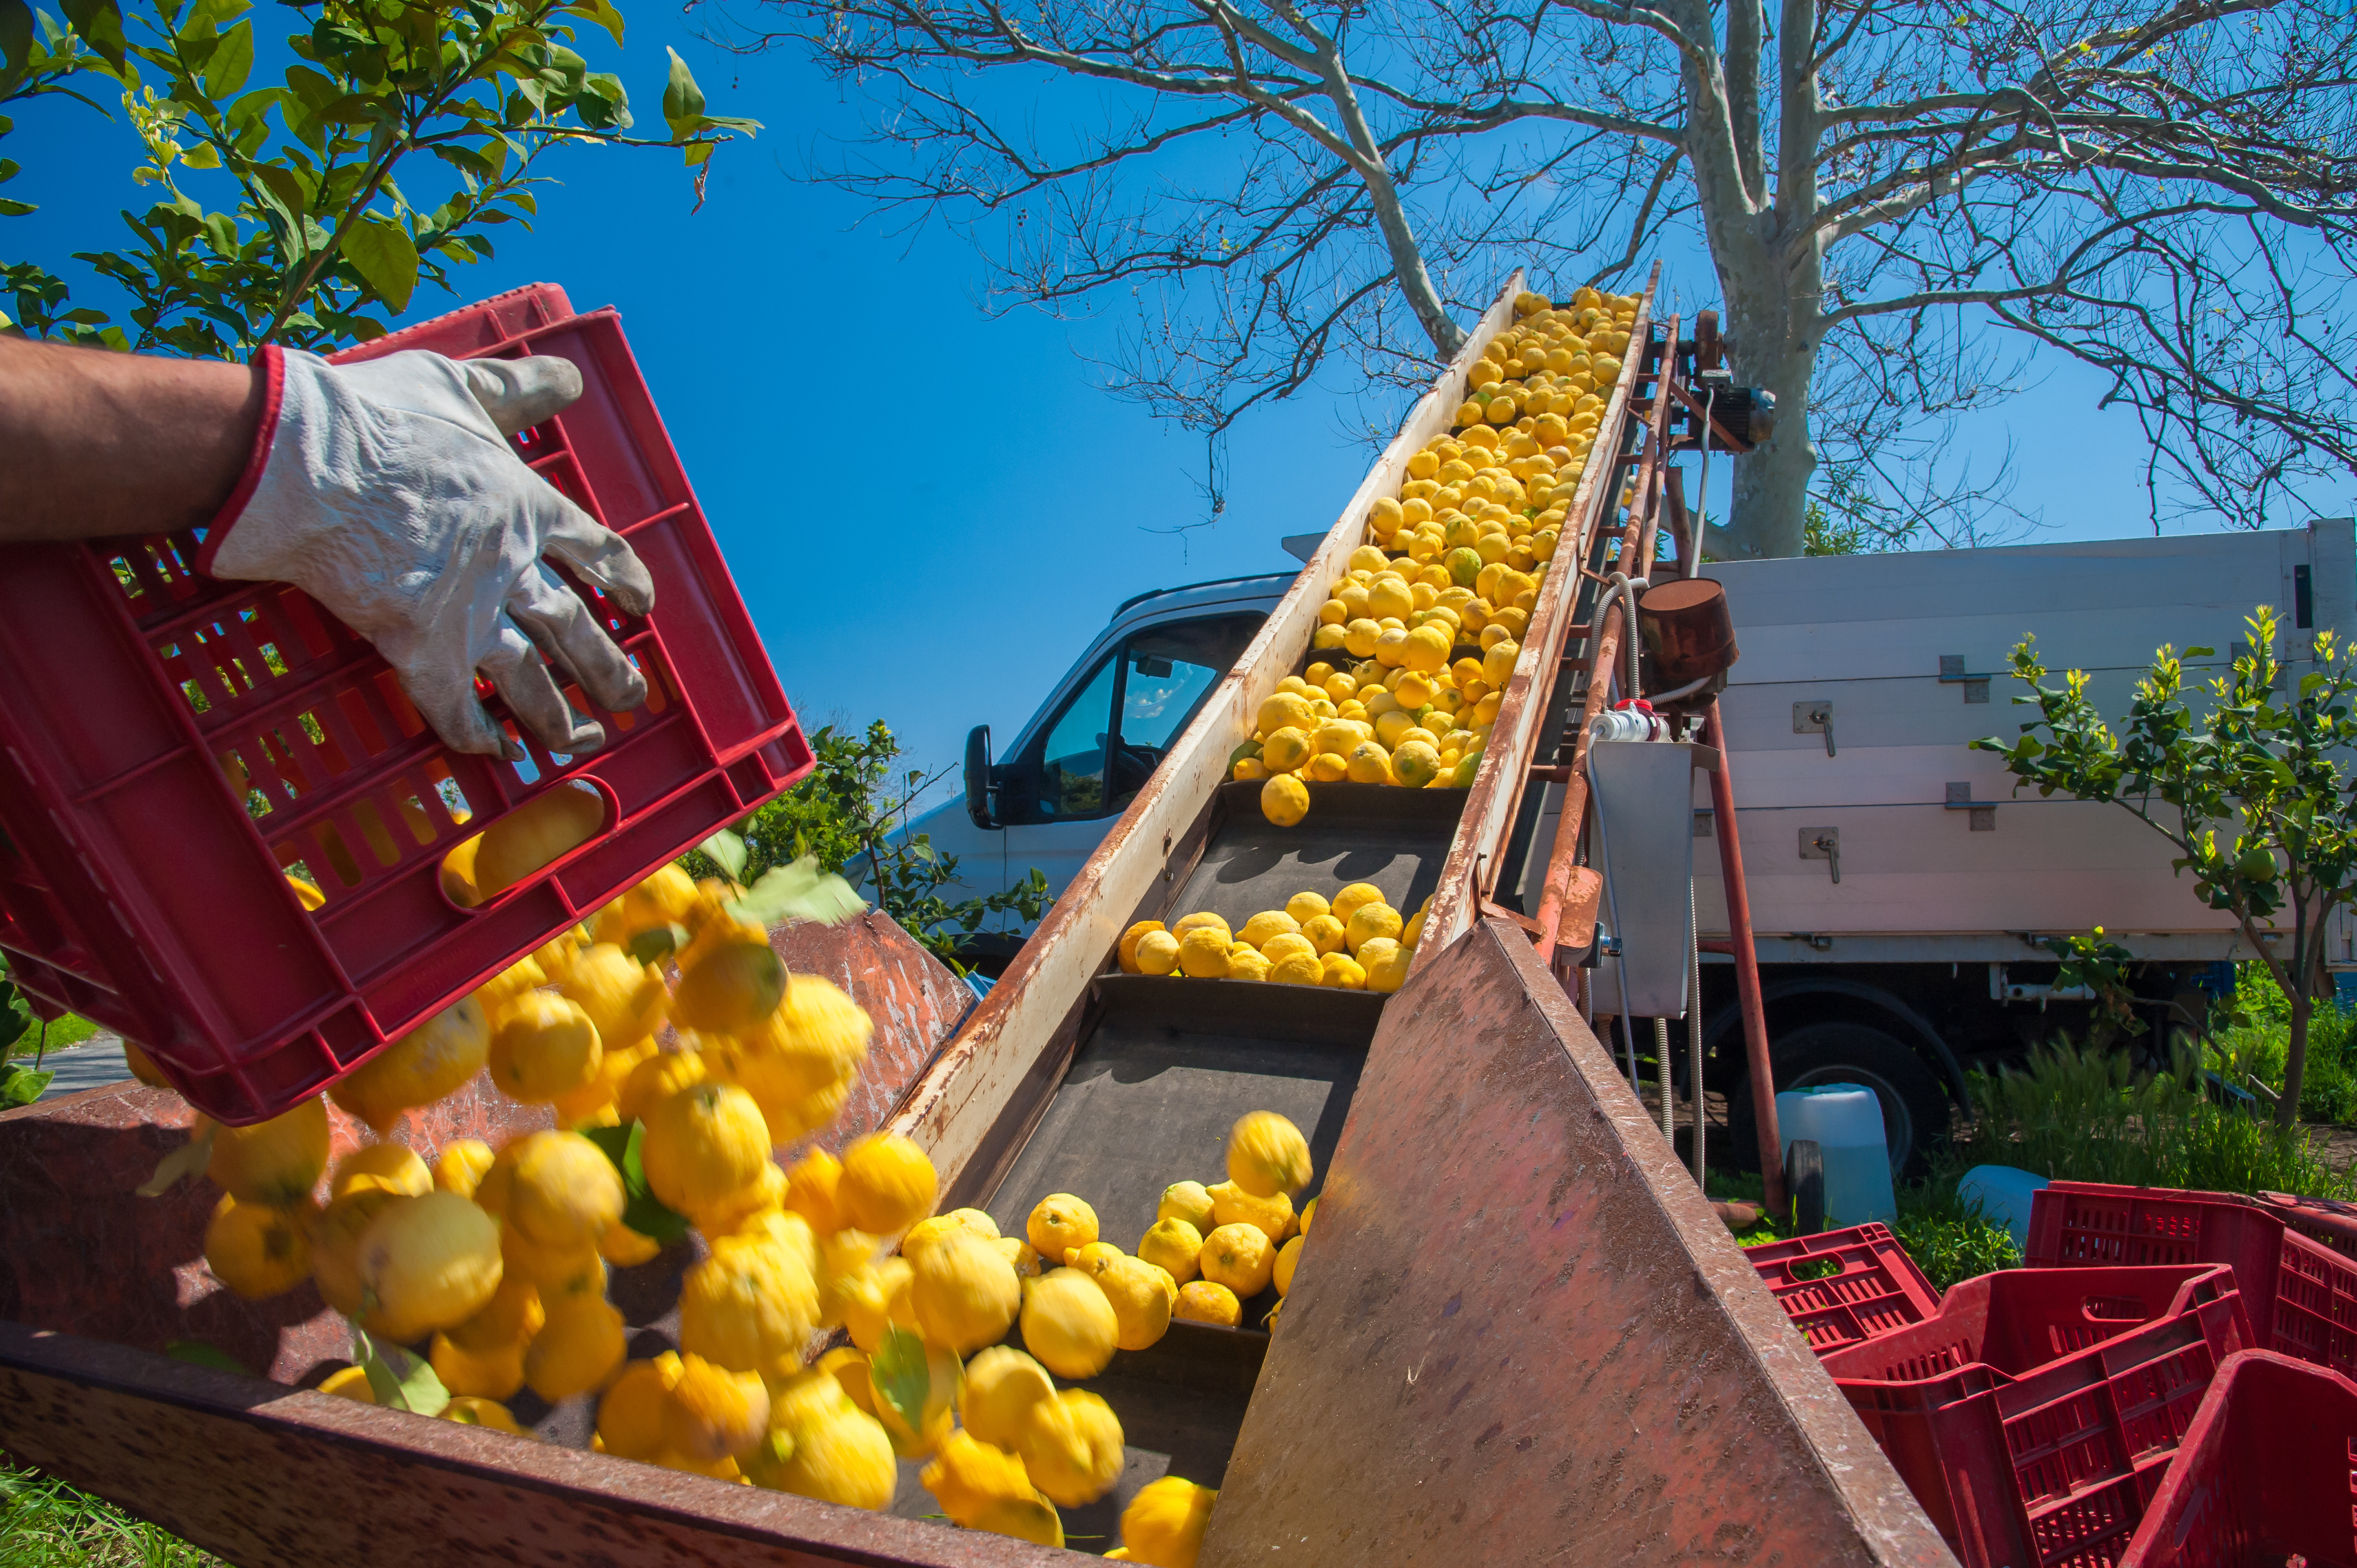 Lemons being transported from tree to truck via cleated conveyor belt